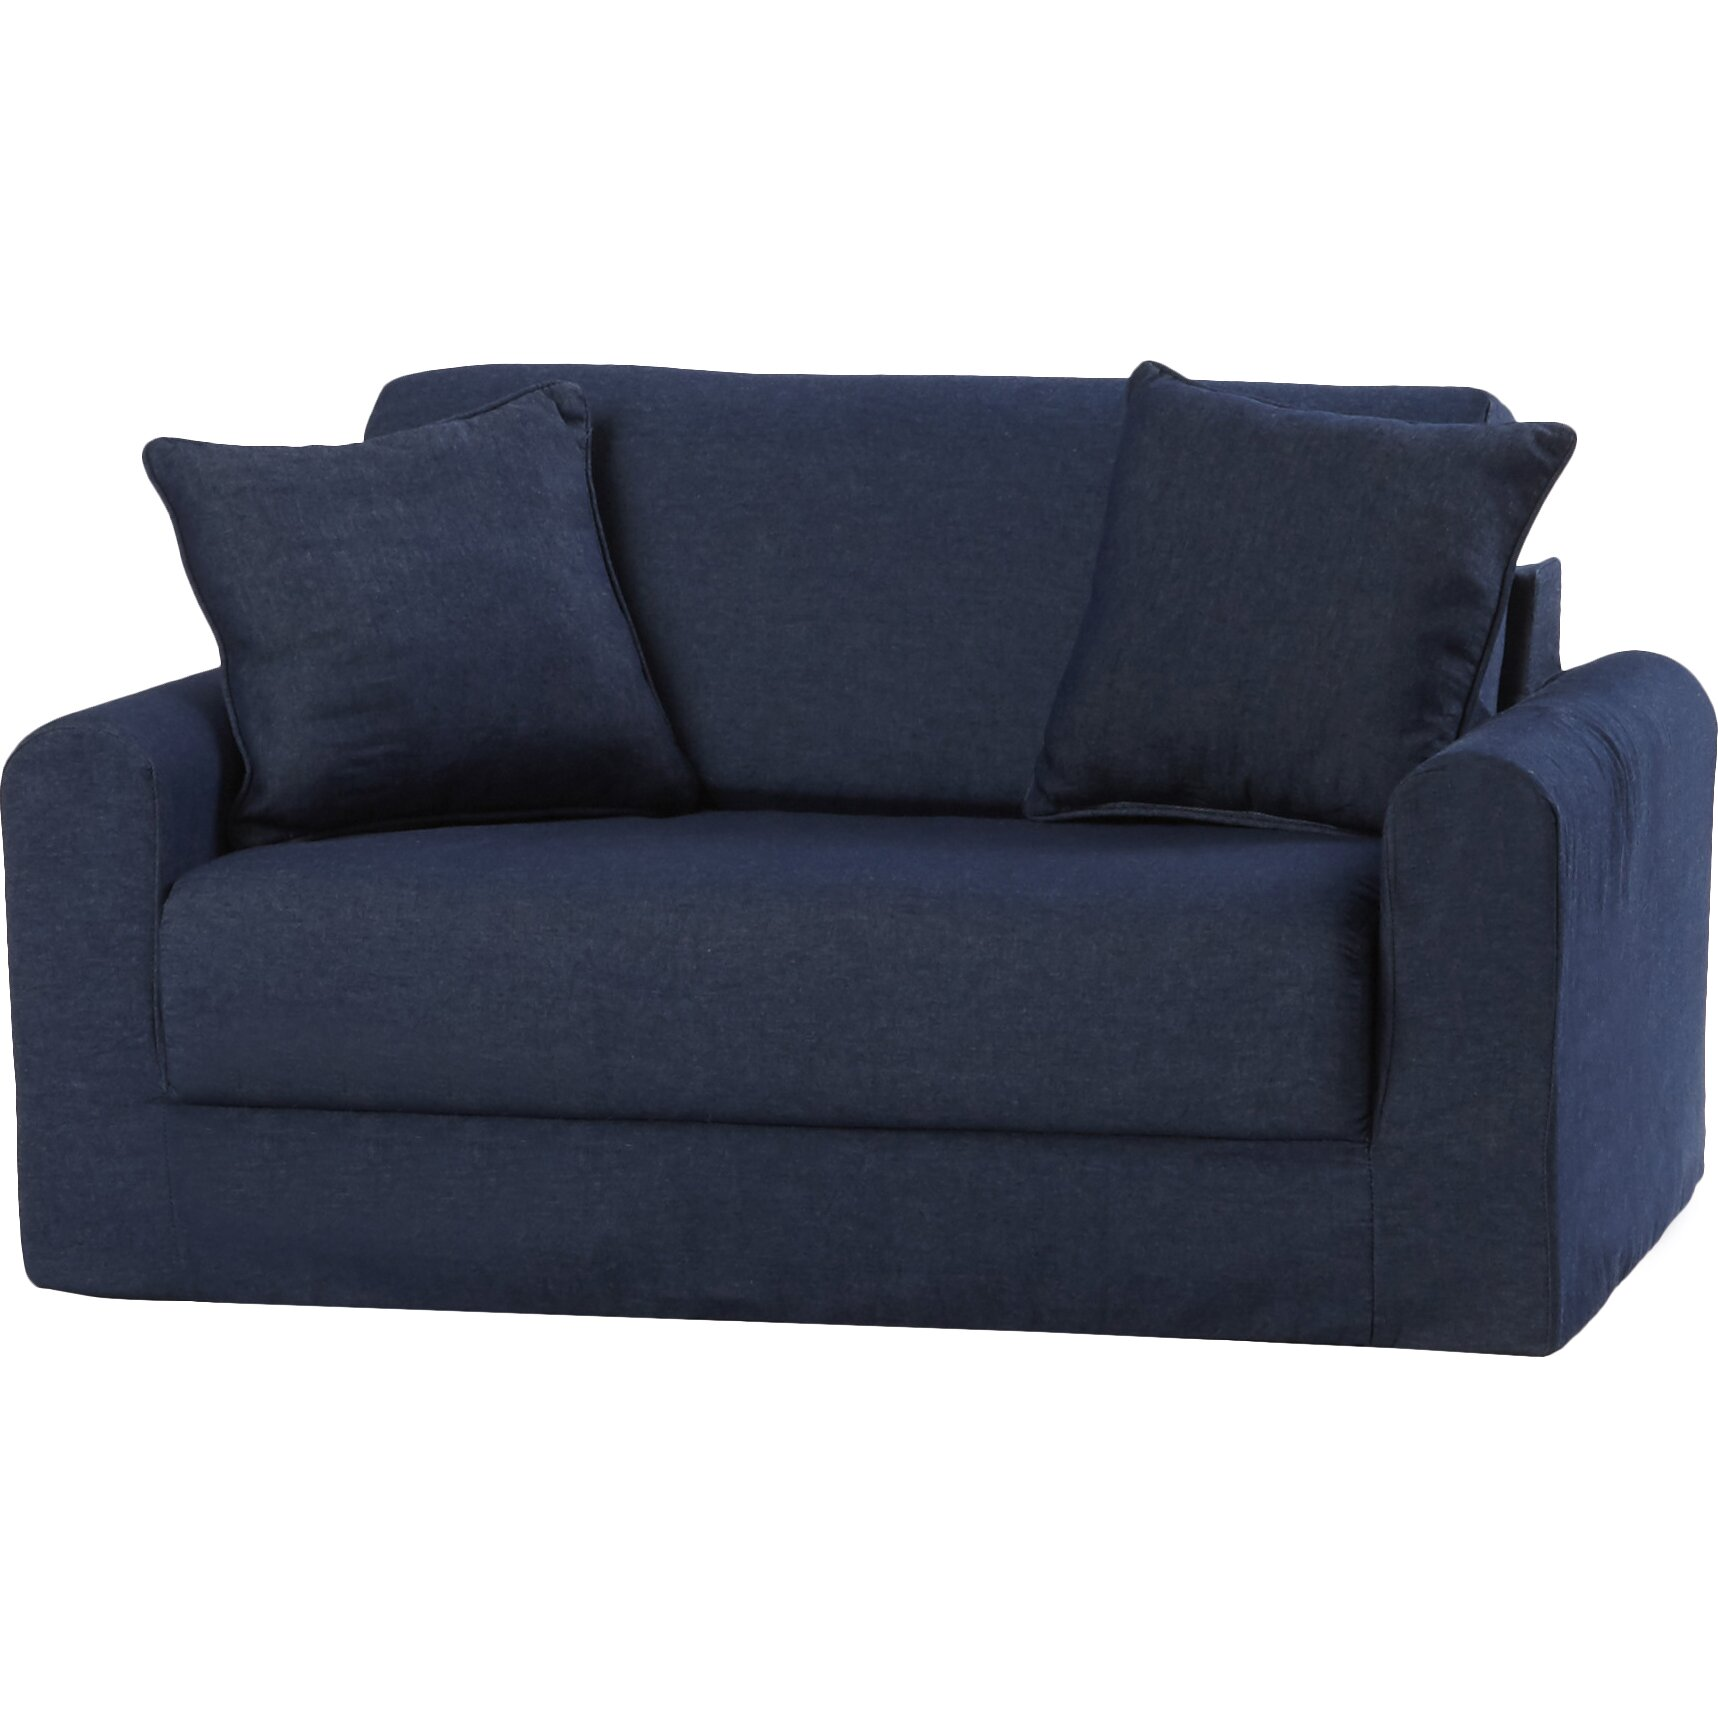 Fun Furnishings Children 39 S Suede Sofa Sleeper Reviews Wayfair